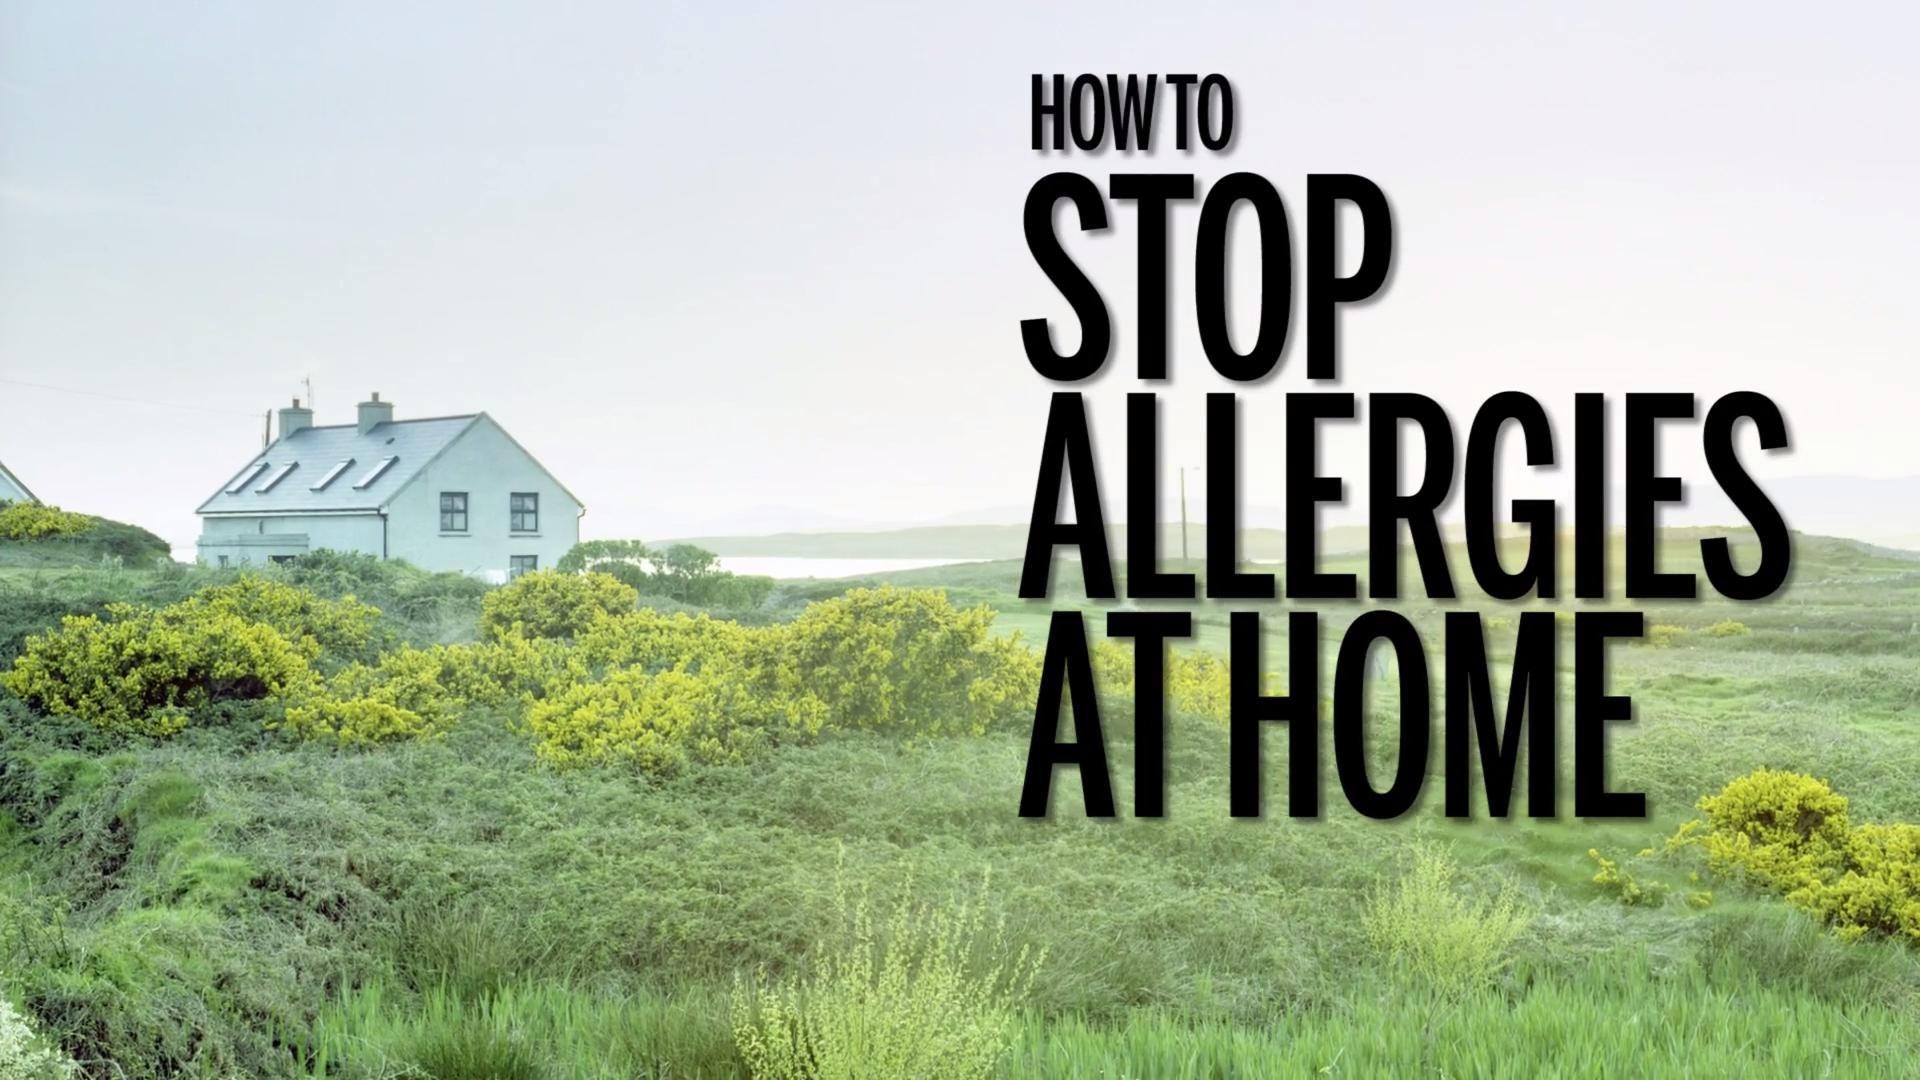 Kick your allergies to the curb